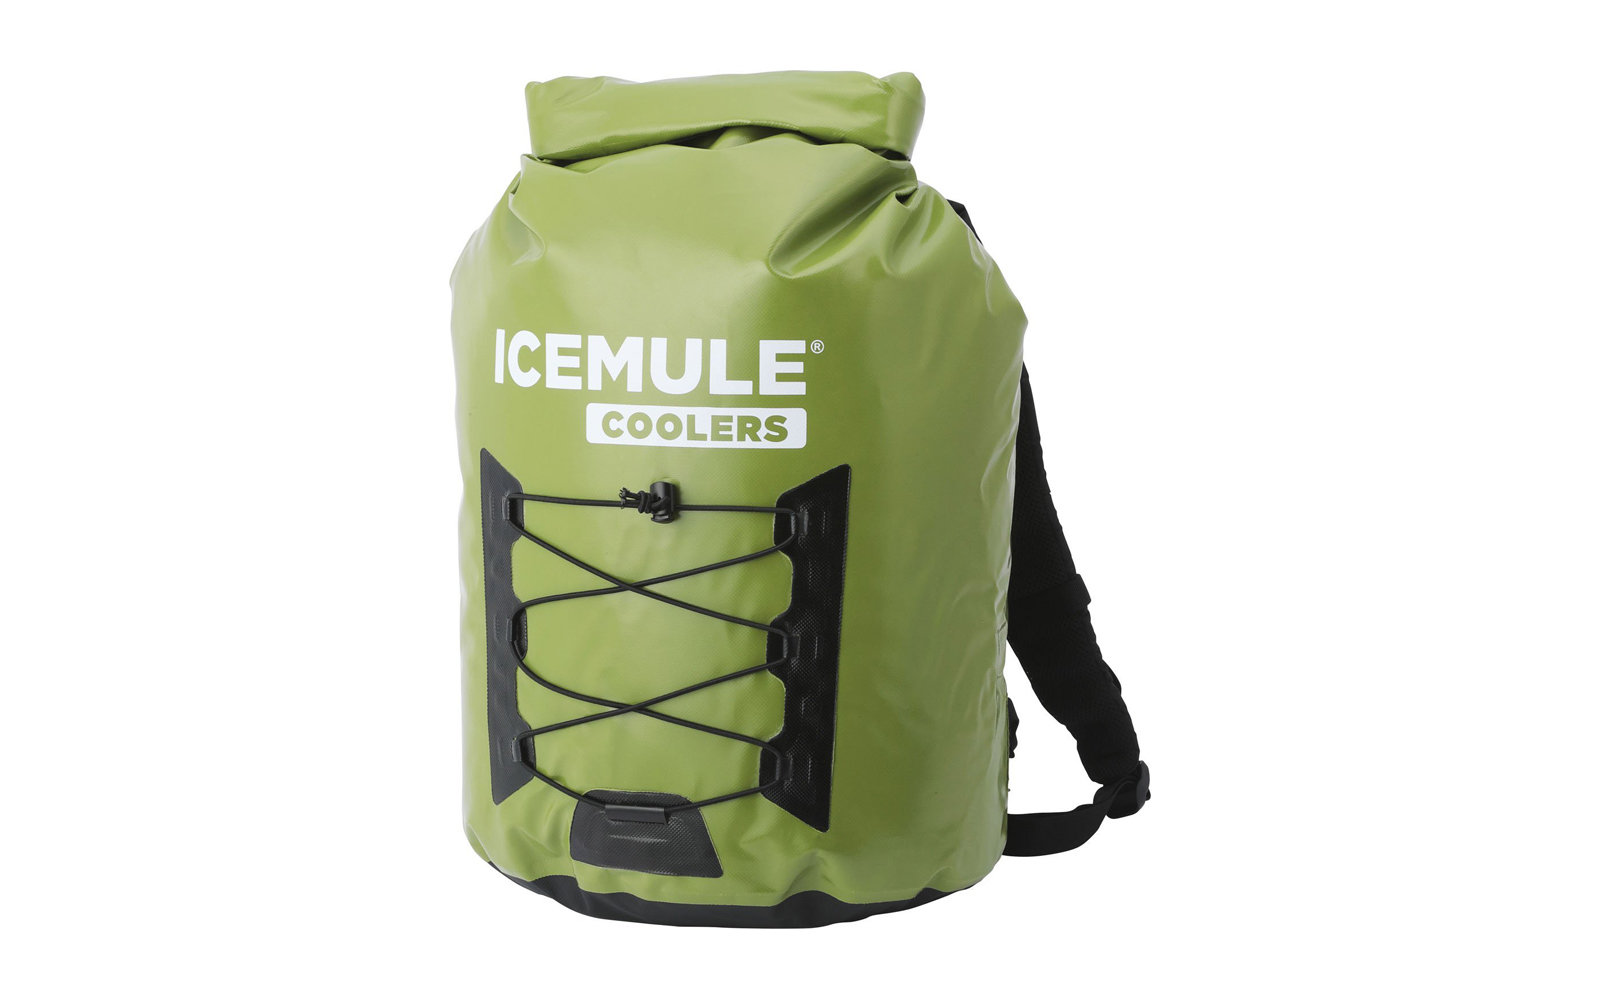 Icemule Coolers Pro Coolers